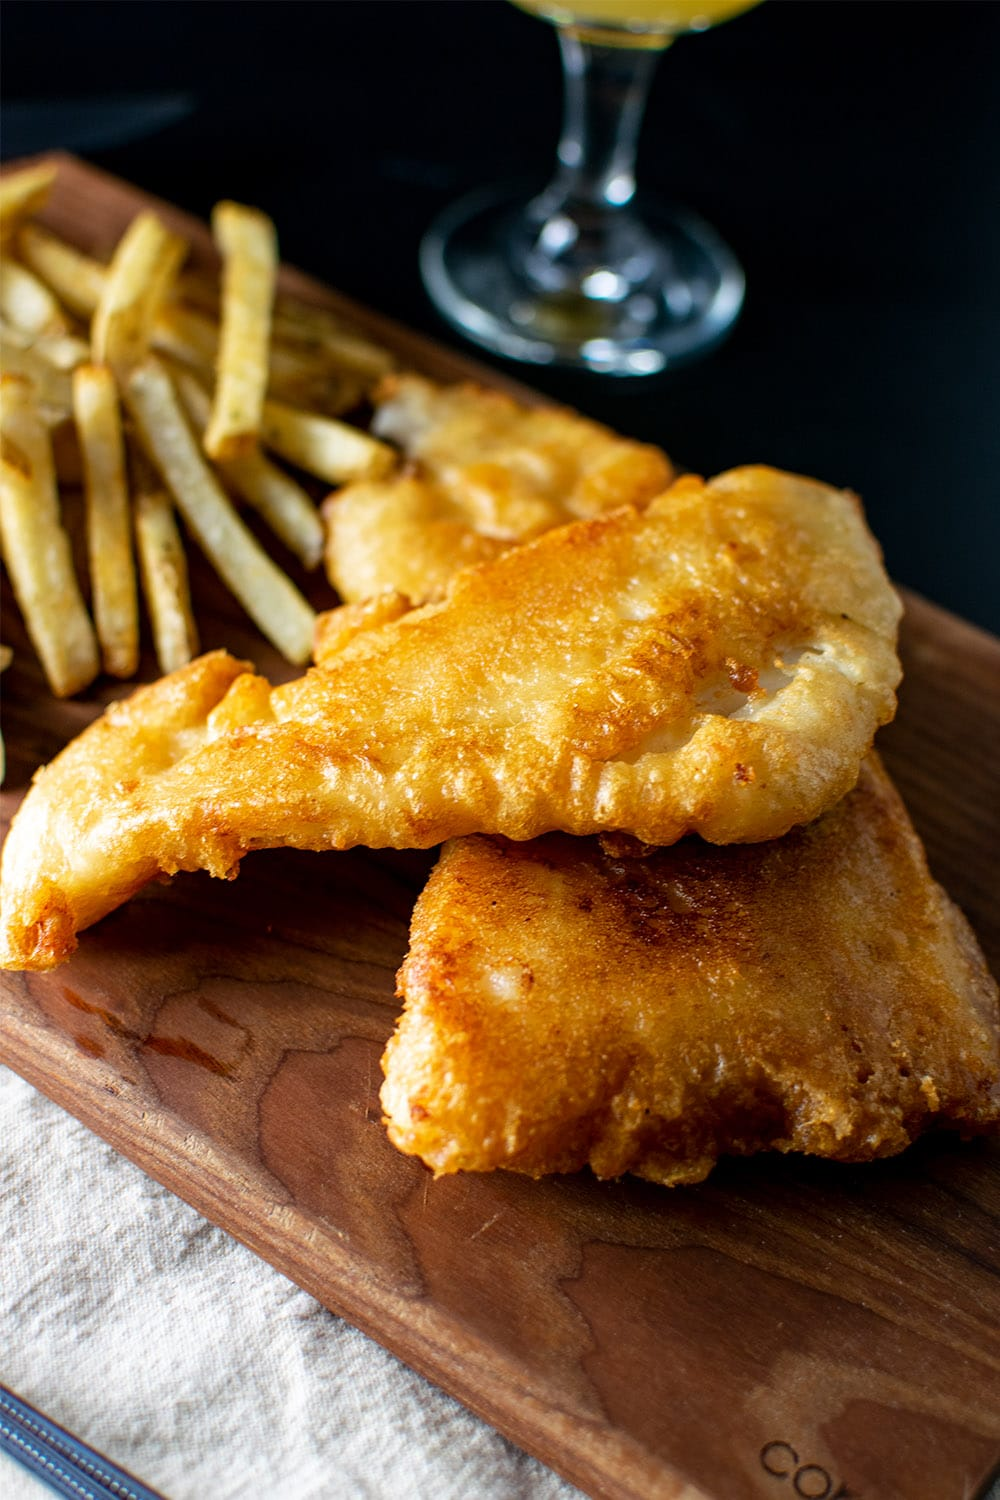 Beer Battered Fish Recipe (Cod or Haddock)